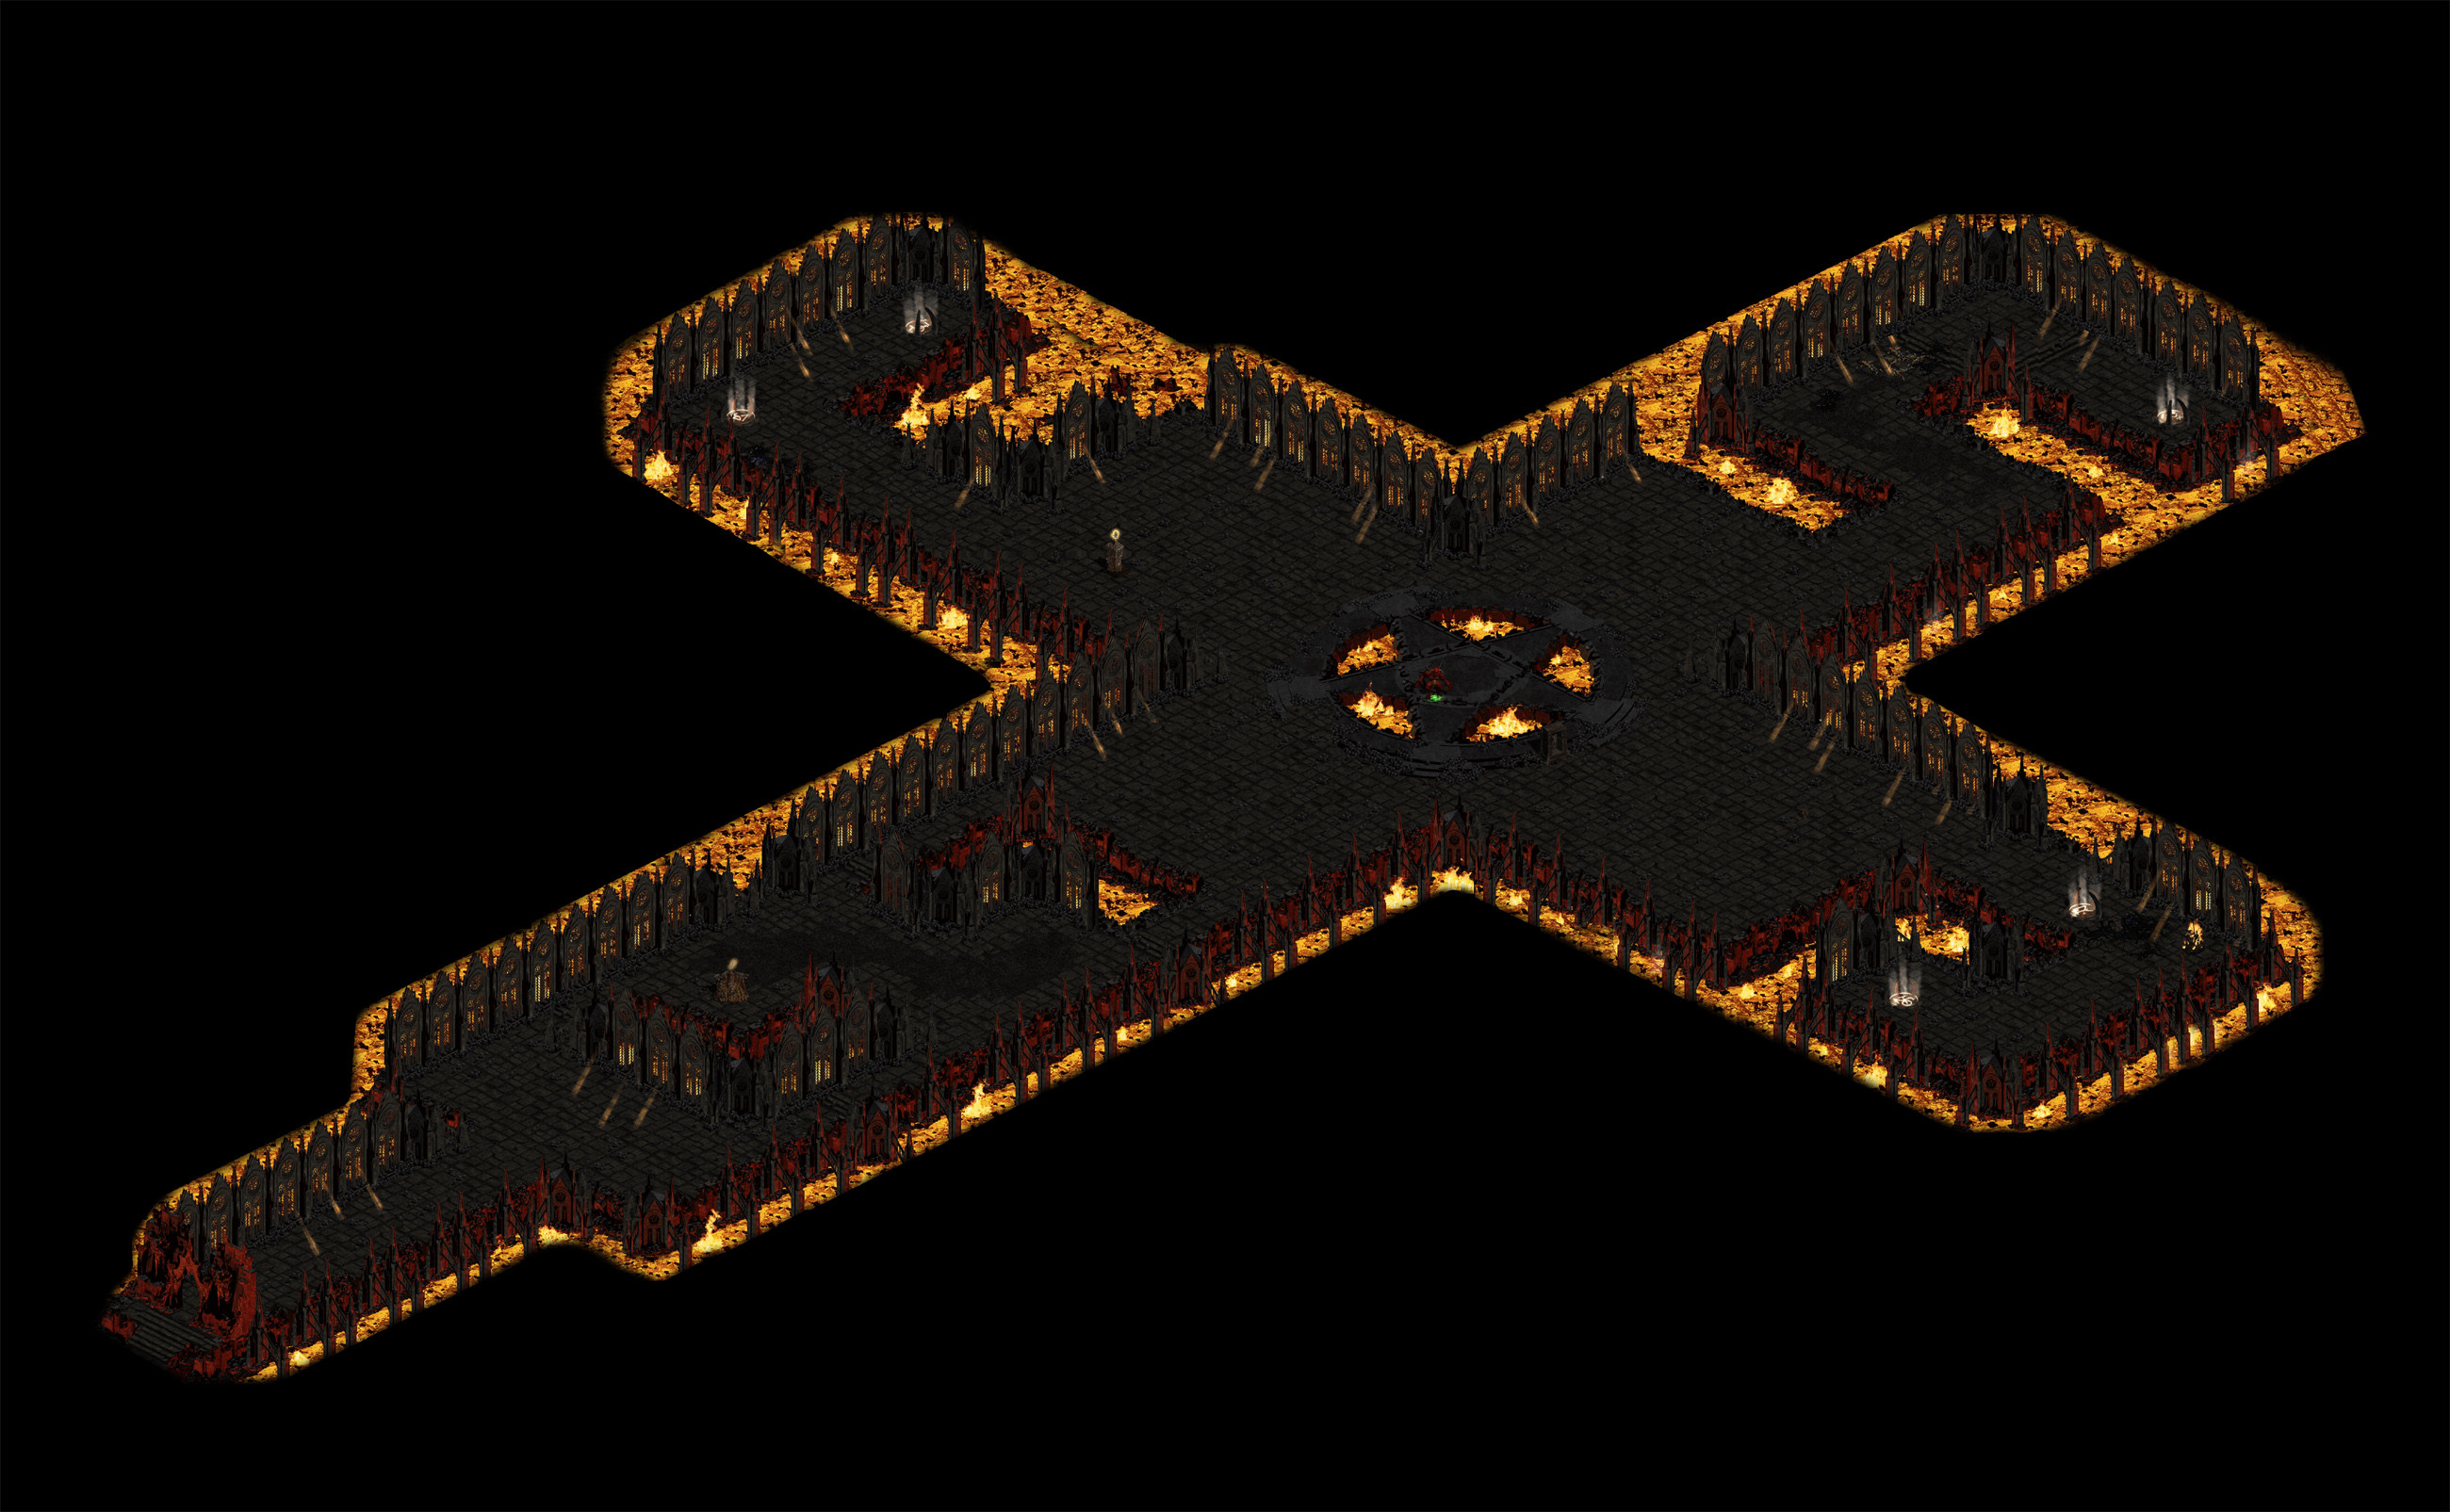 I tried many different layouts at first but in the end decided to stick with the cross-shaped layout; I really like the design of it and wanted to keep that classic Diablo-esque feeling in the level.